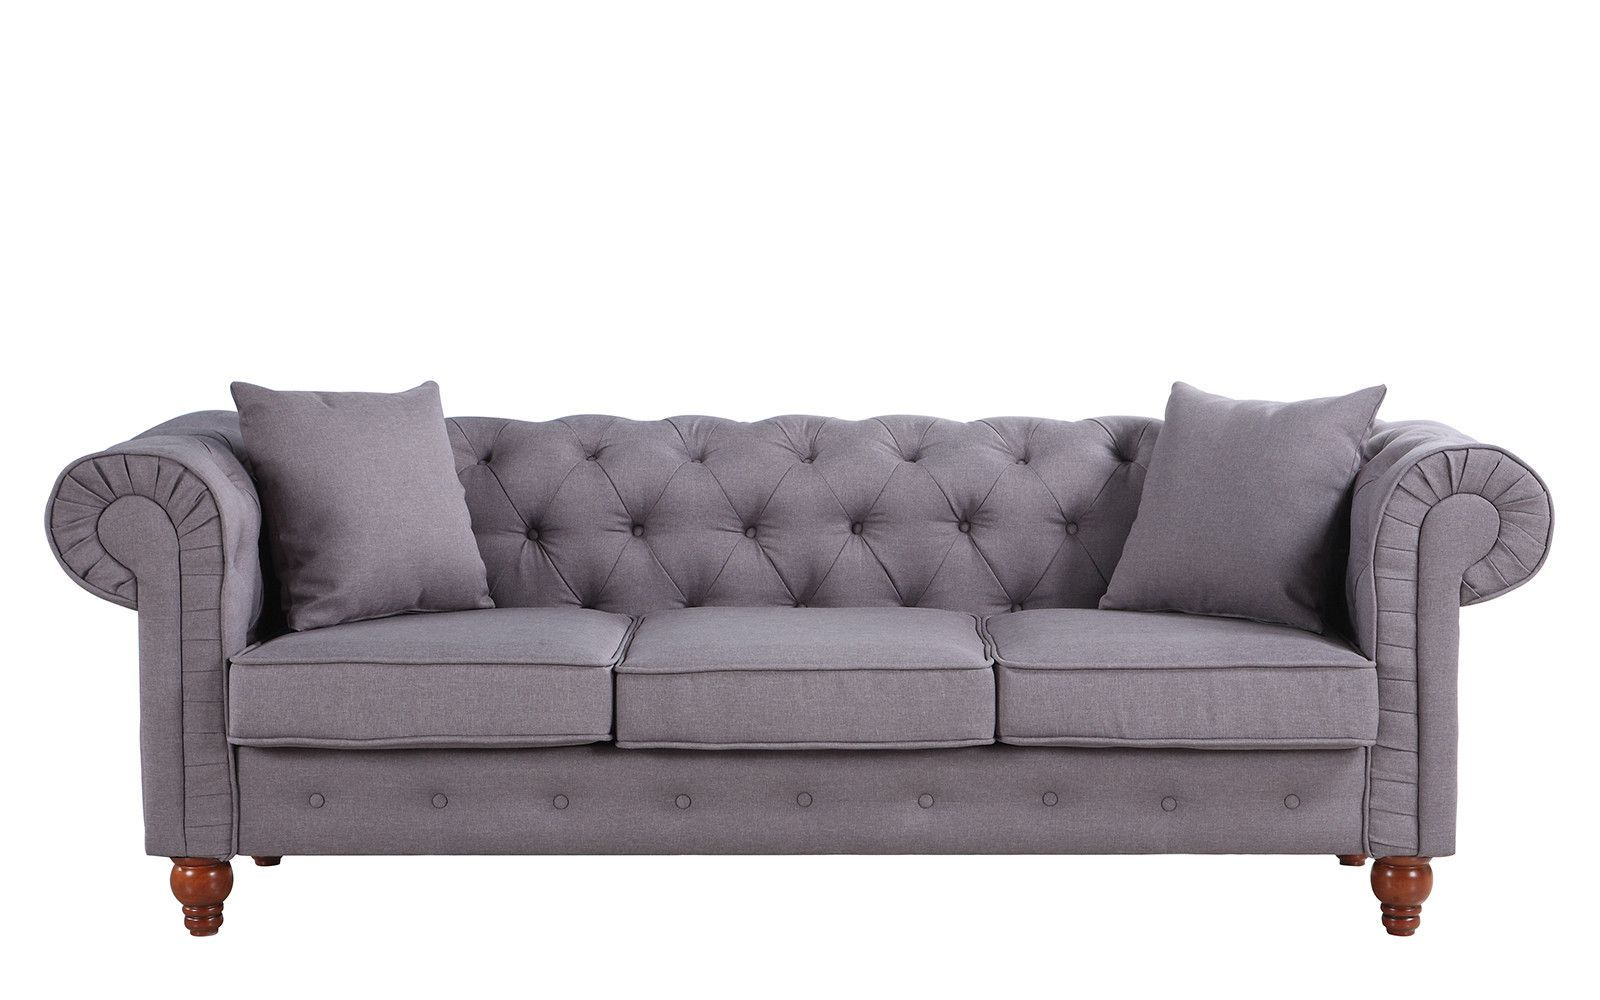 Stratford Classic Grey Fabric Chesterfield Sofa Home Fabric